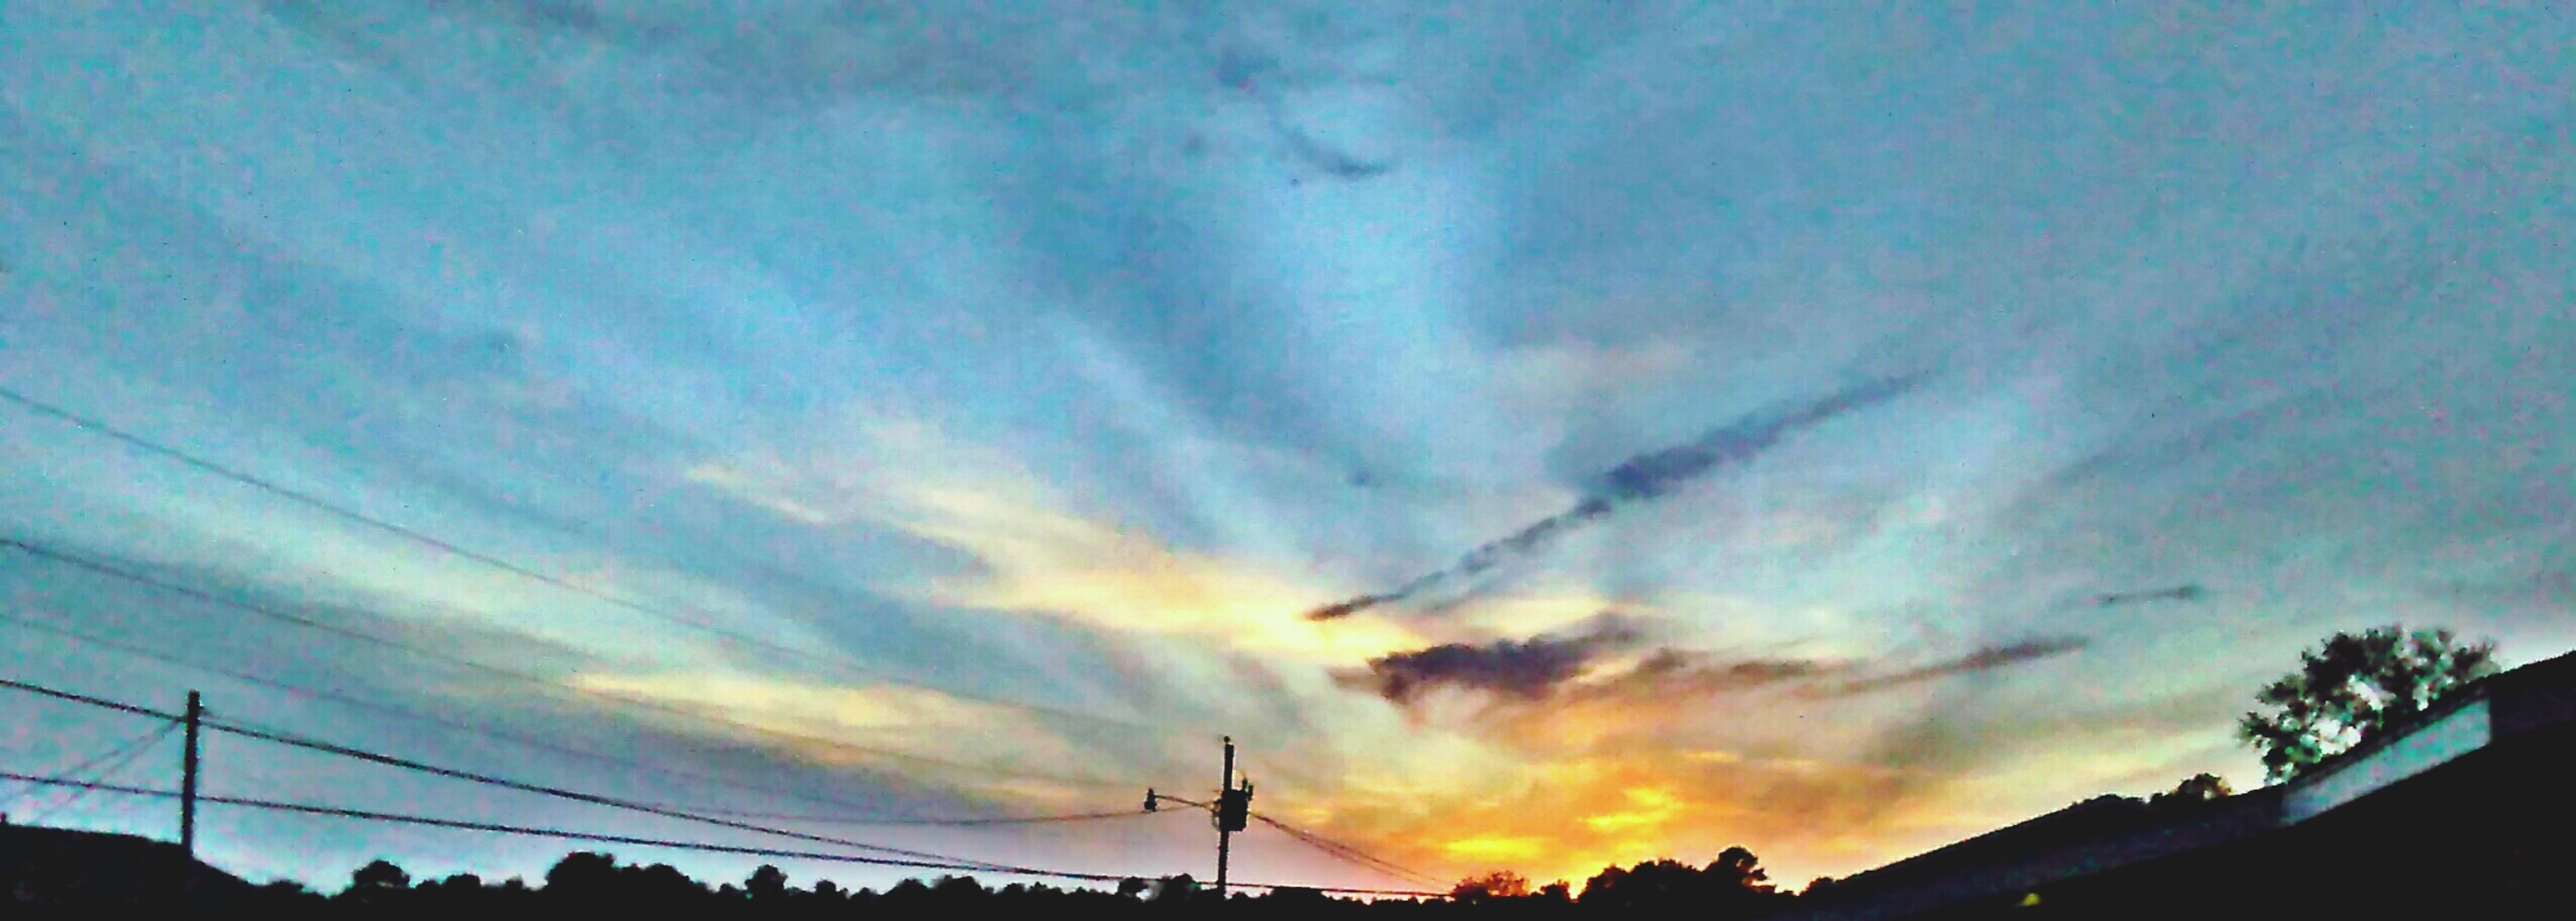 Sunset over my complex. Taking Photos Mobilephotography Sky And Clouds Landscape #Nature #photography HDR Hdr_Collection